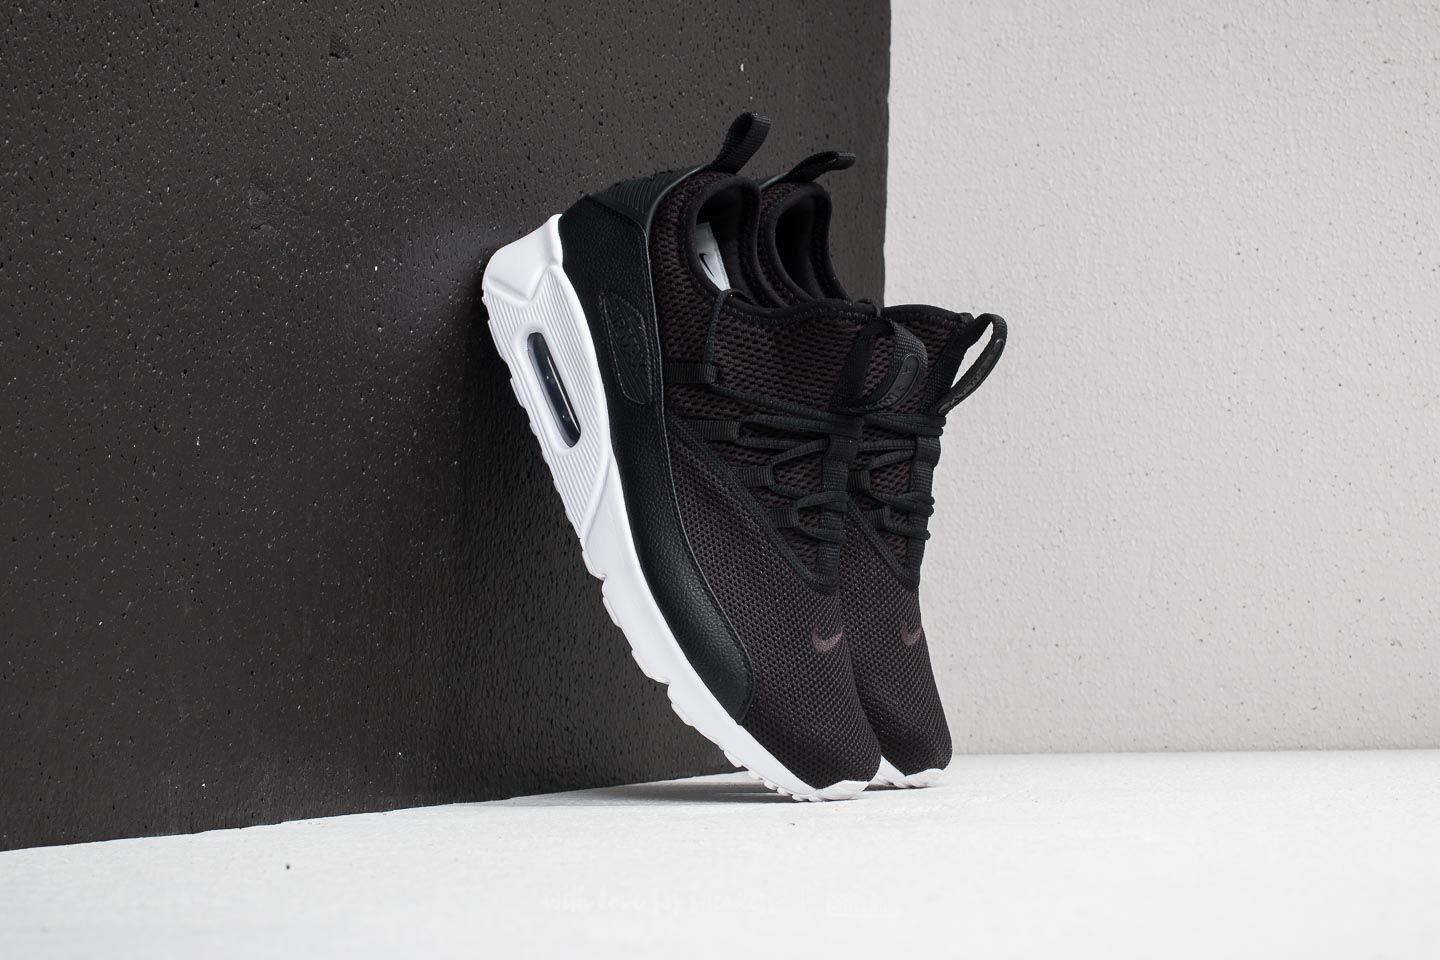 2c16b0730dee6 Nike Air Max 90 EZ Black/ Black/ White | Footshop